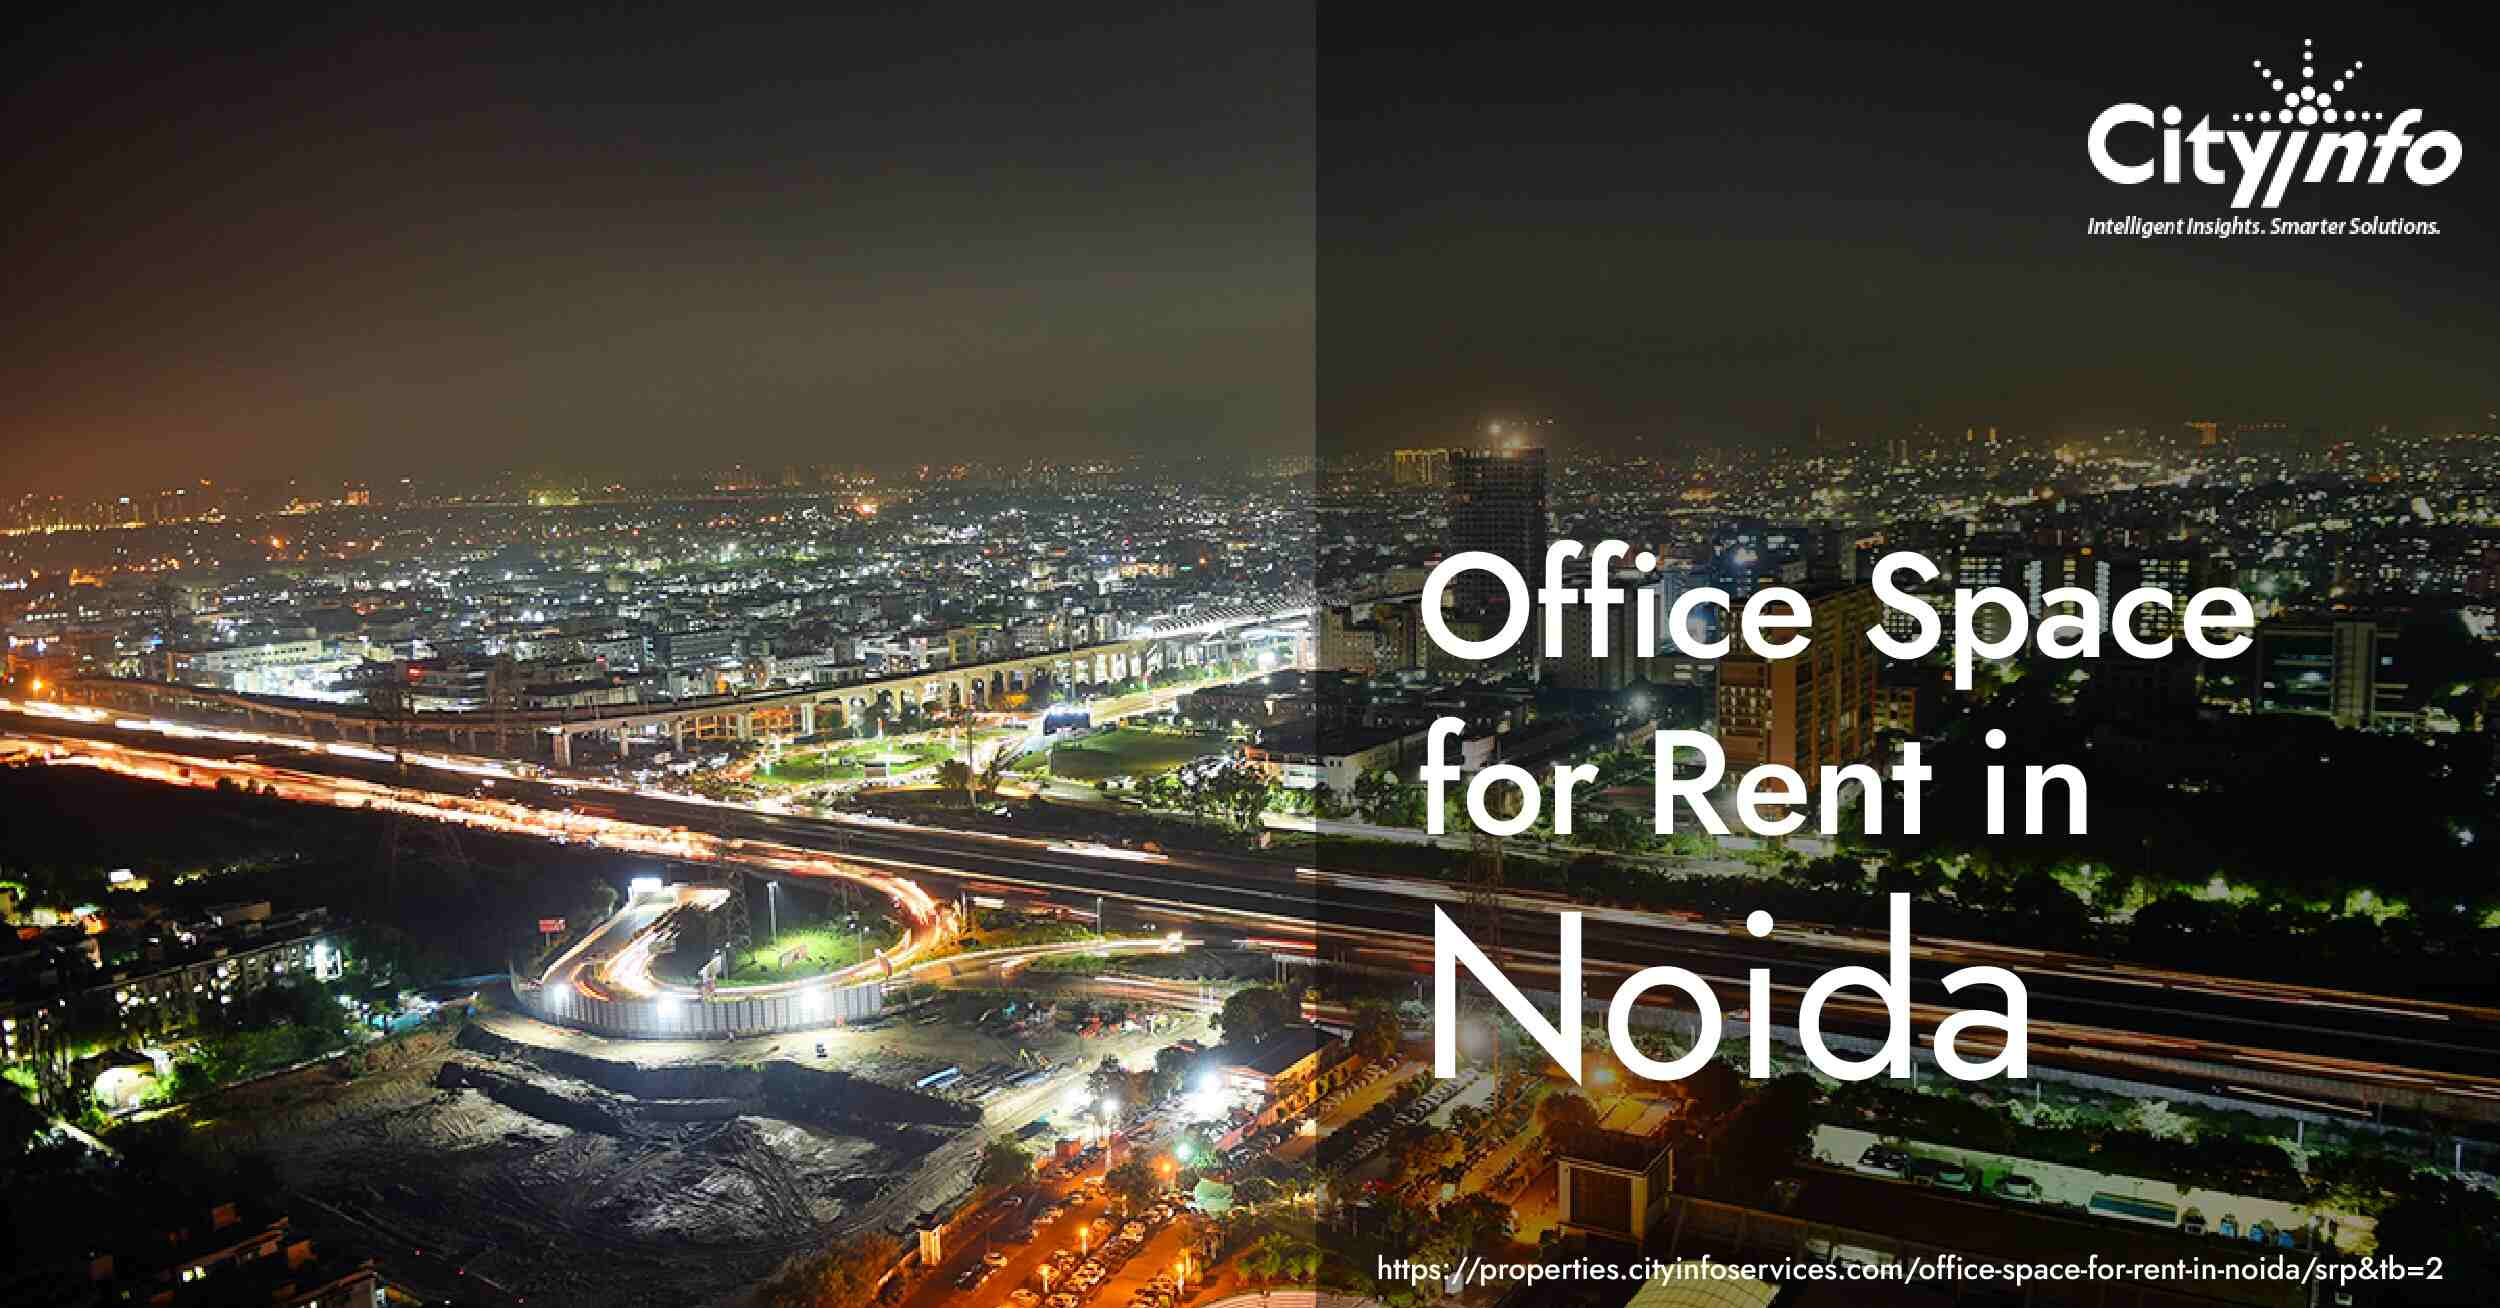 Office space for rent in noida CityInfoservices Property Portal